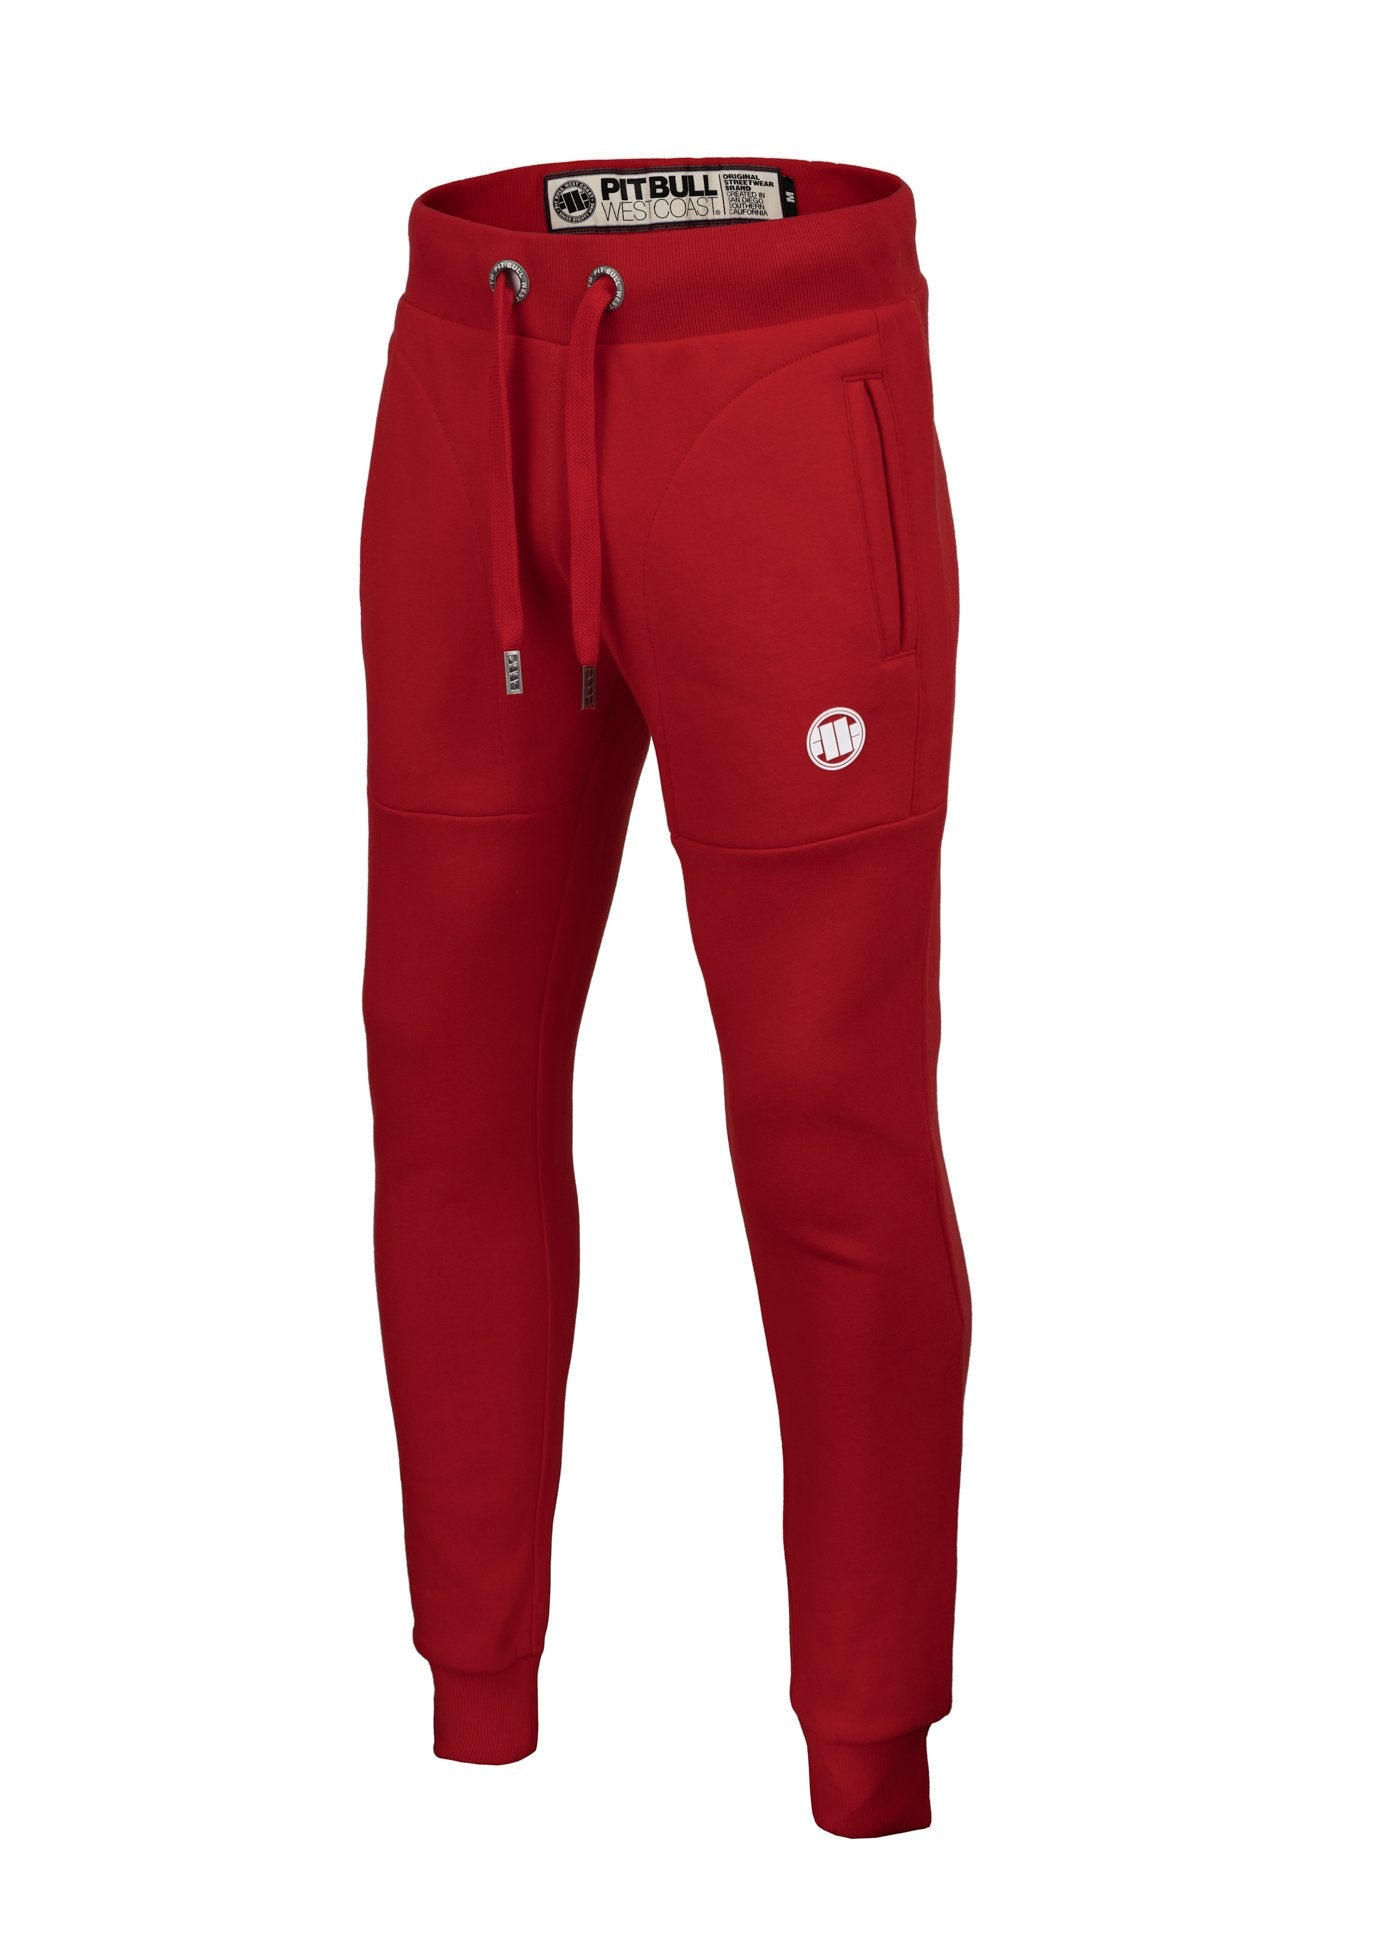 TRACK PANTS SMALL LOGO RED - pitbullwestcoast